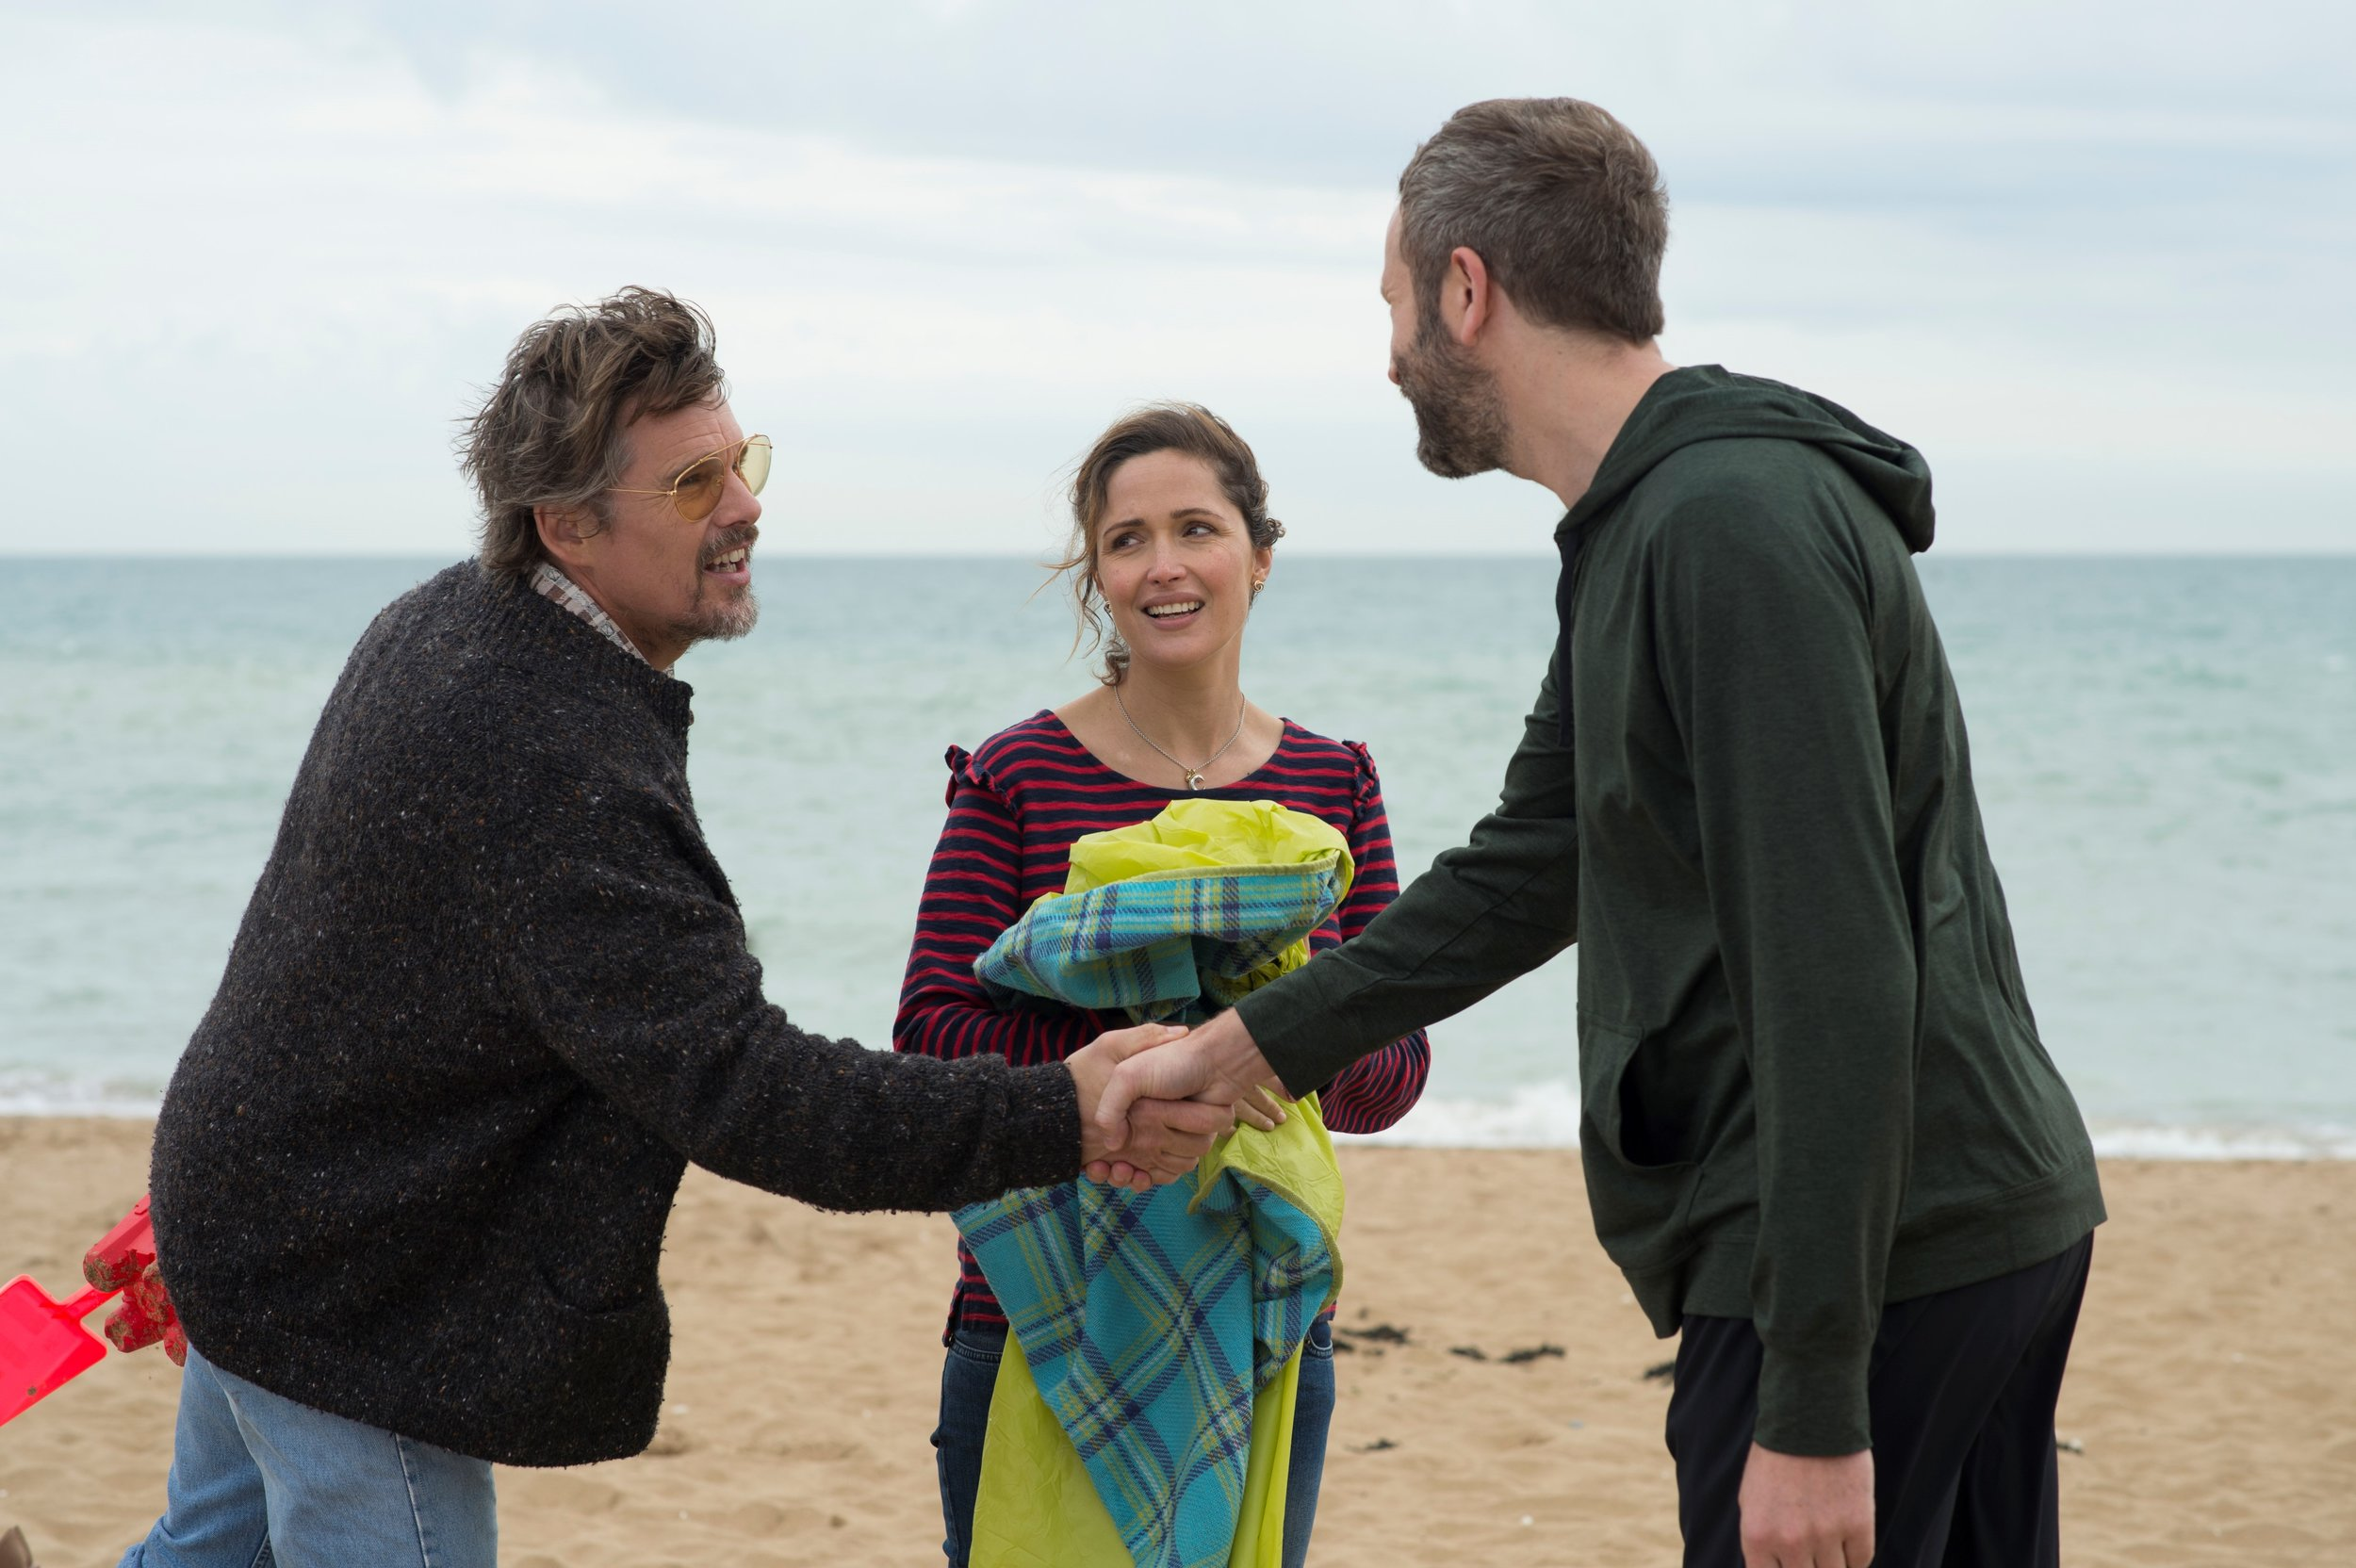 "Annie (Rose Byrne, center) is put in the awkward position of introducing her longtime boyfriend, Duncan (Chris O'Dowd) to Tucker Crowe (Ethan Hawke), the reclusive musician over whom Duncan has long obsessed, in a scene from the comedy ""Juliet, Naked."" (Photo by Alex Bailey, courtesy Lionsgate/Roadside Attractions)"